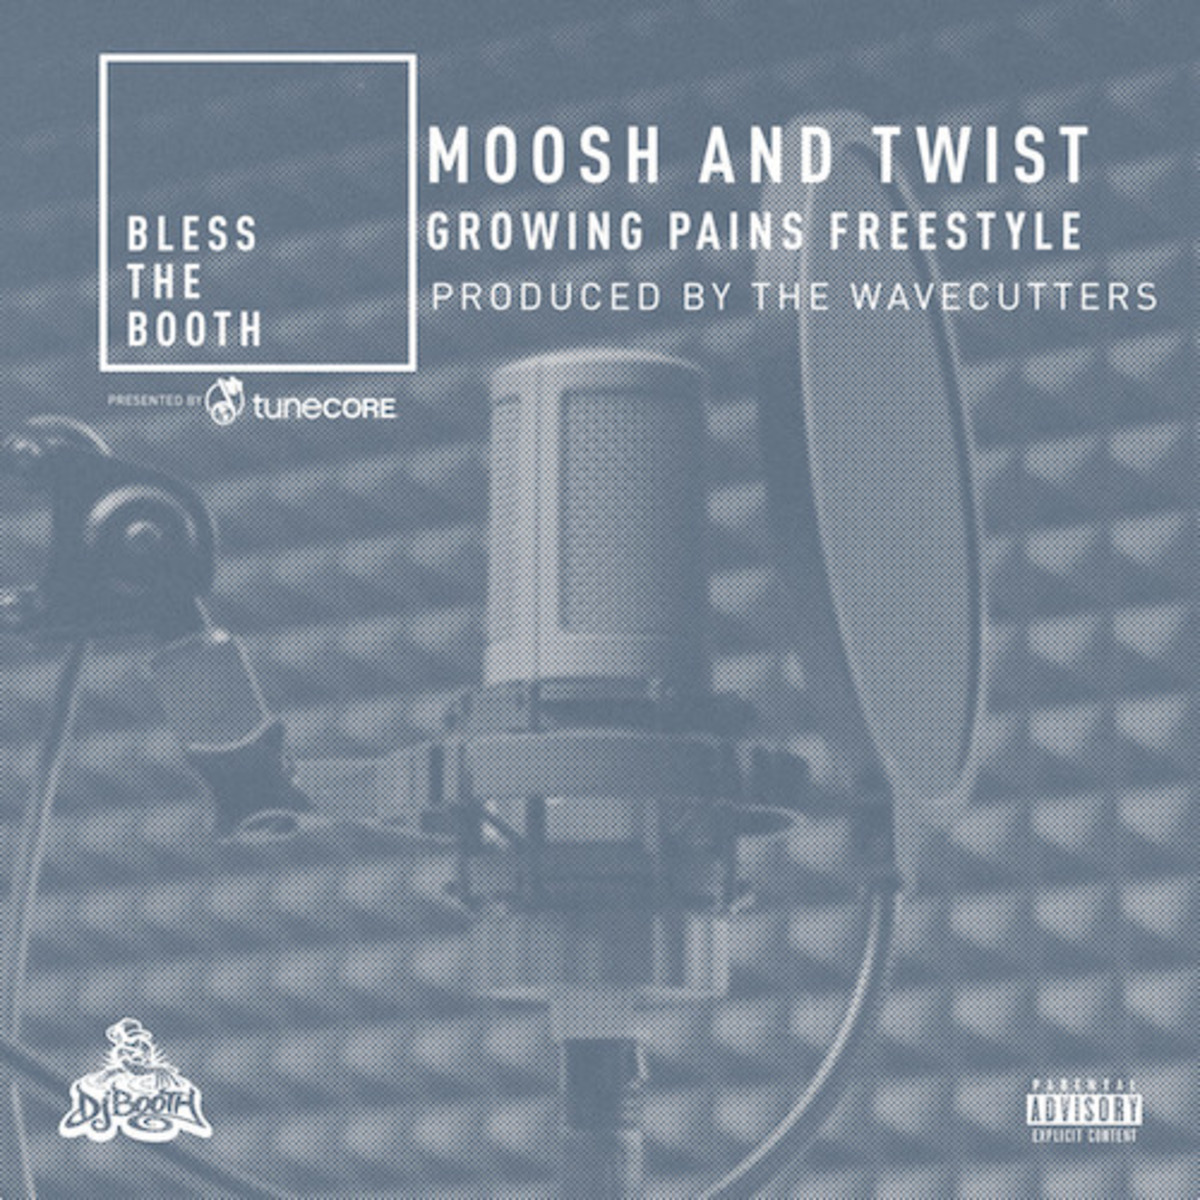 moosh-twist-bless-the-booth.jpg